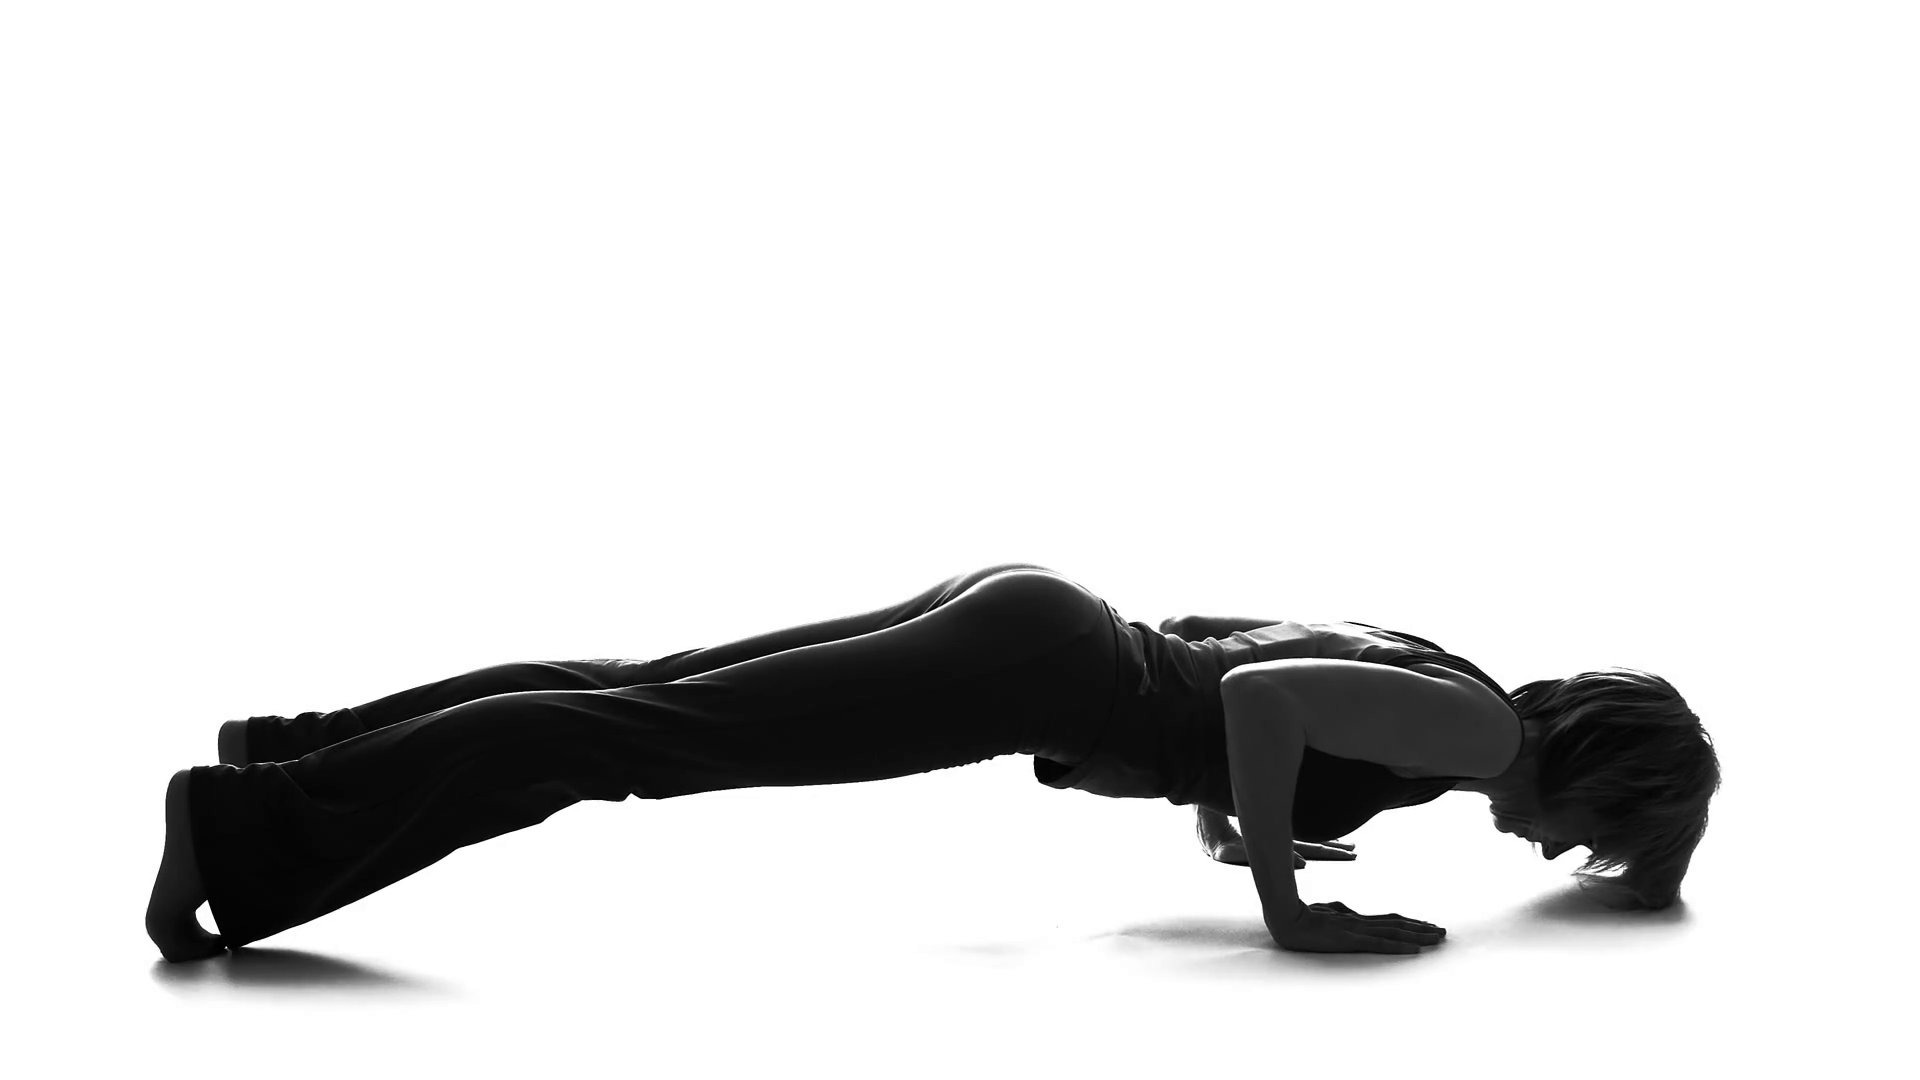 1920x1080 Fitness Woman Silhouette Practicing Yoga, Plank Exercise, Home